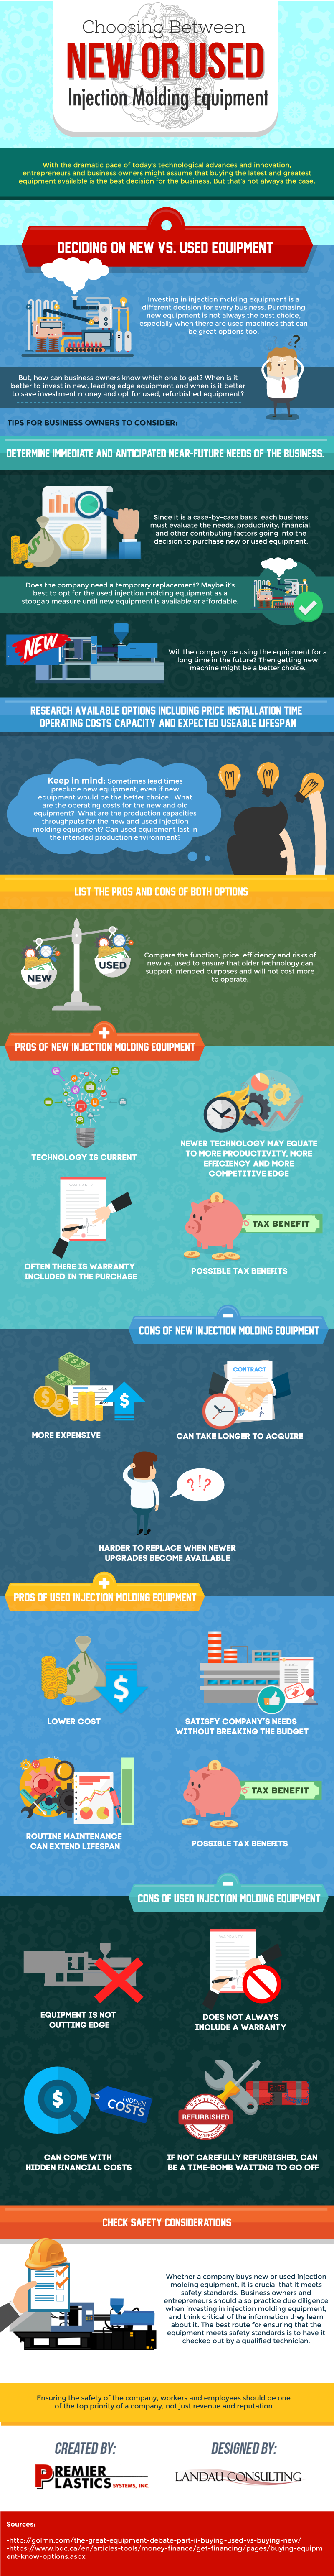 Should You Invest In New Equipments? - Infographic